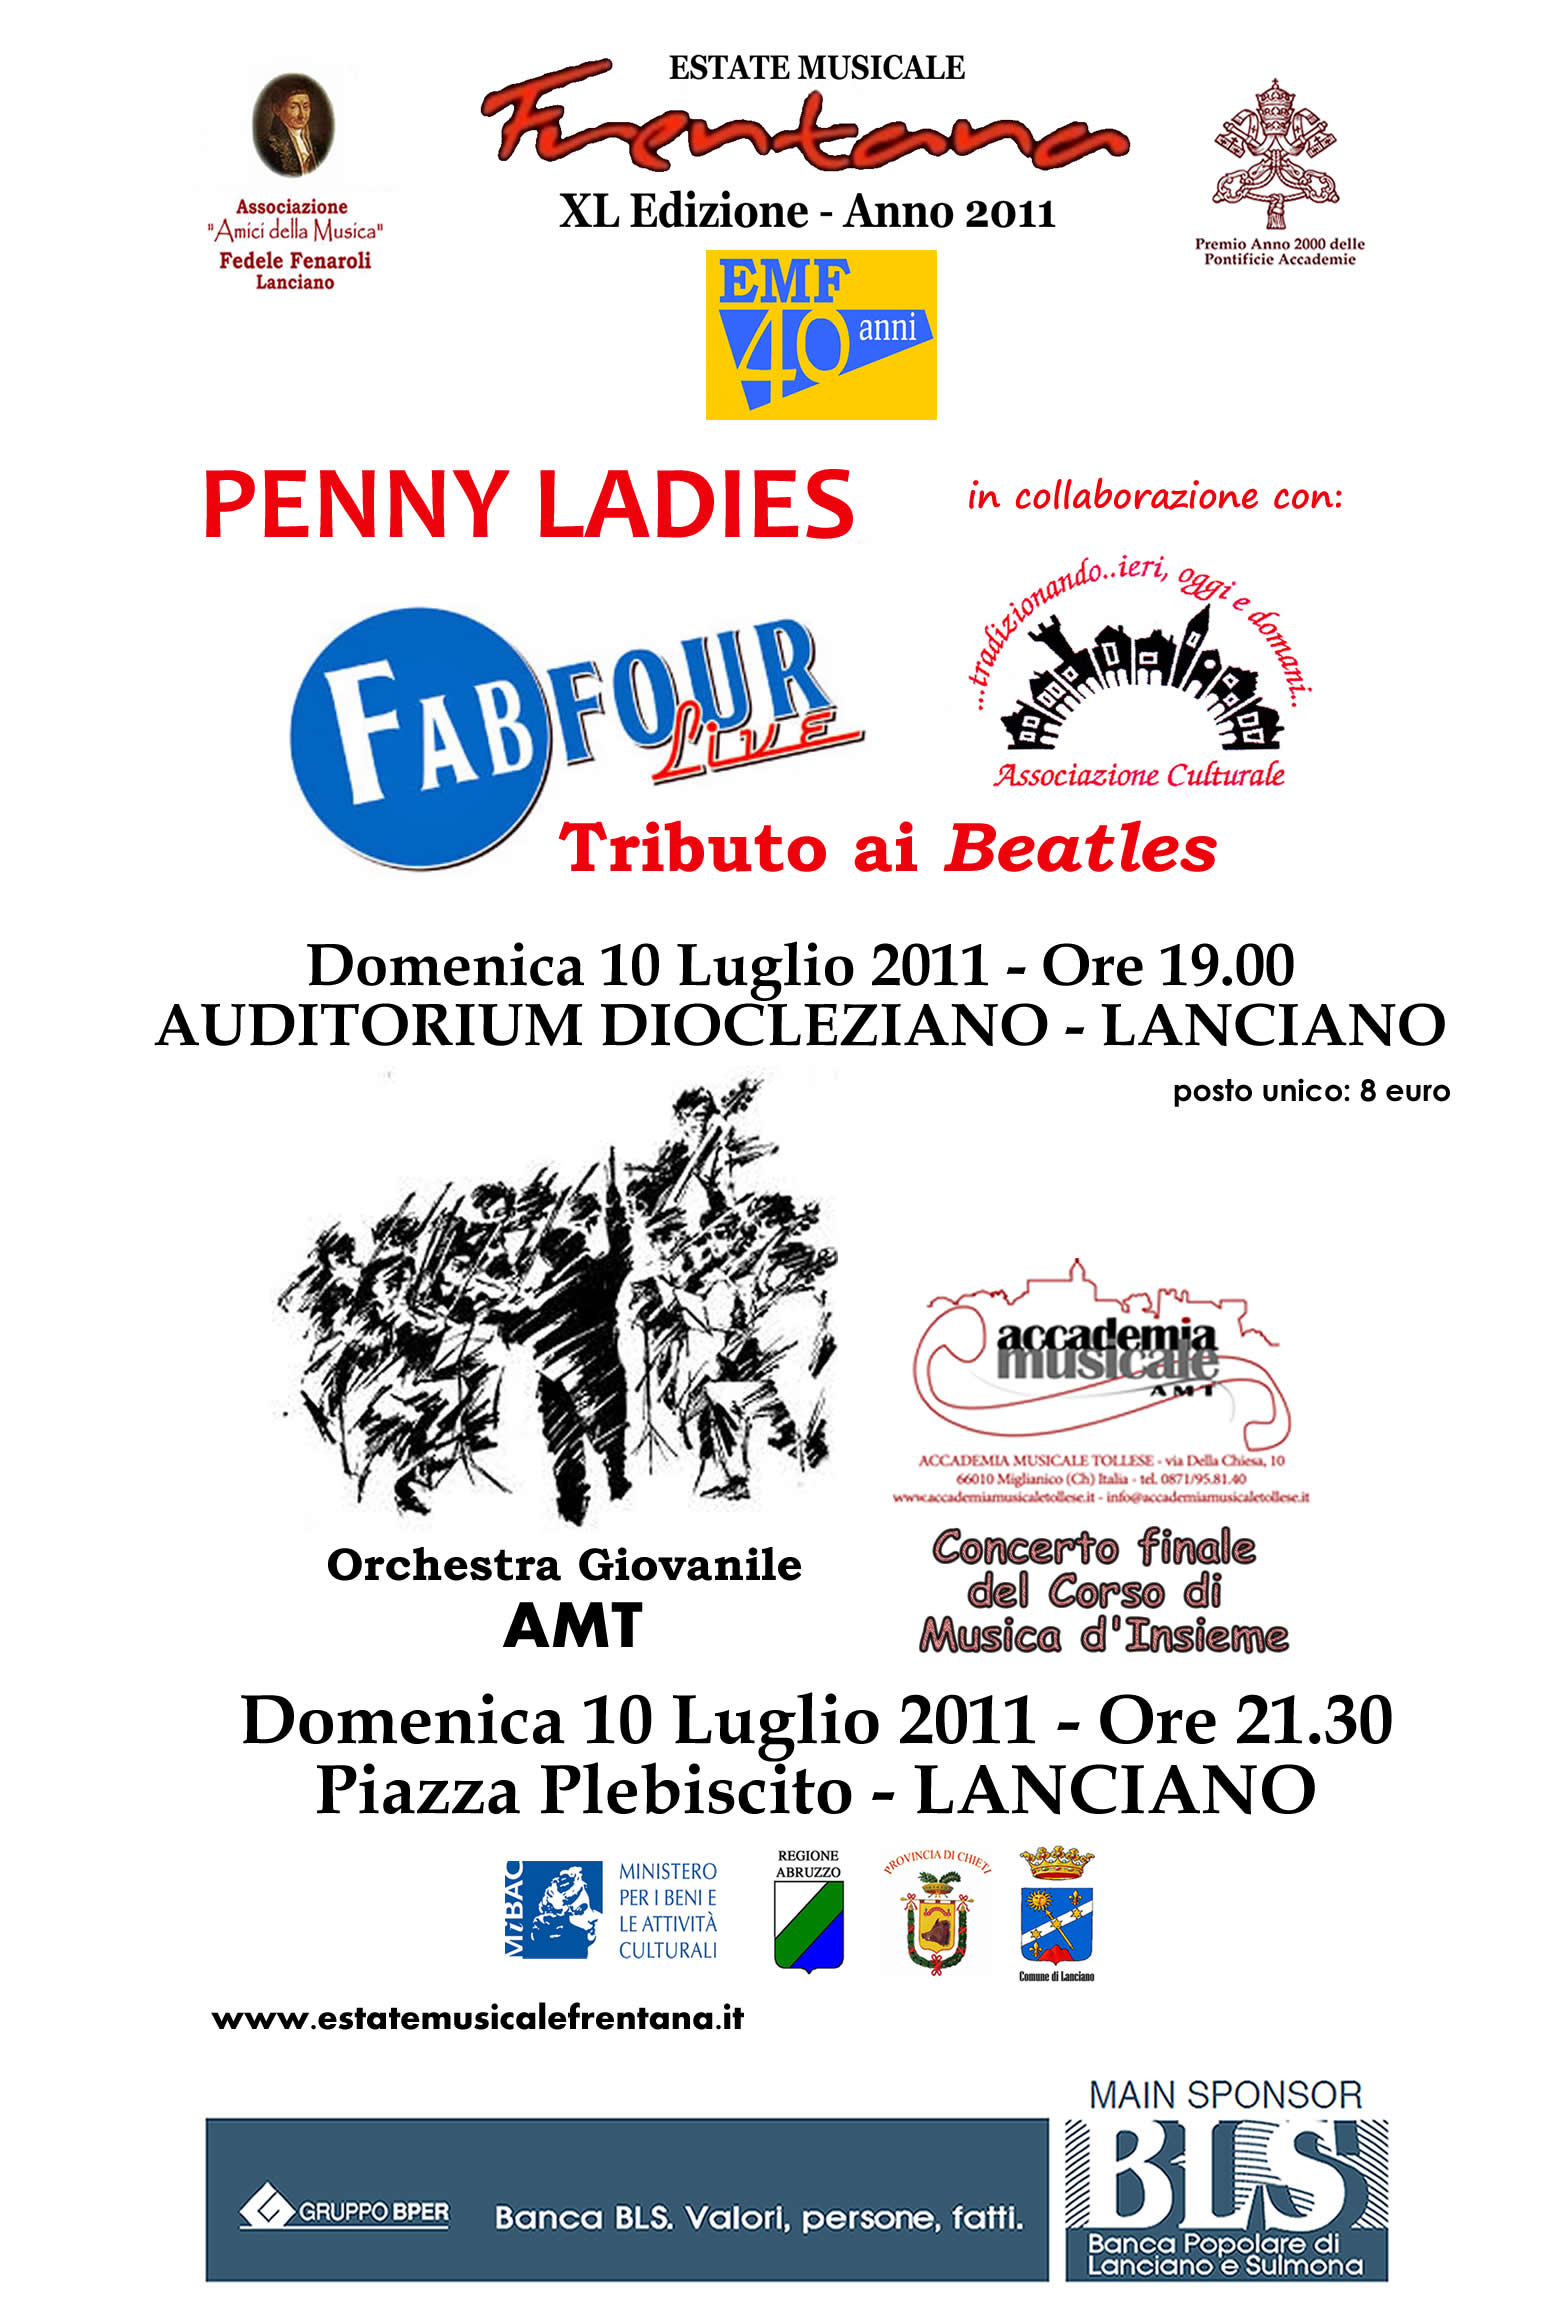 PENNY LADIES: FAB FOUR LIVE - ORCHESTRA GIOVANILE AMT